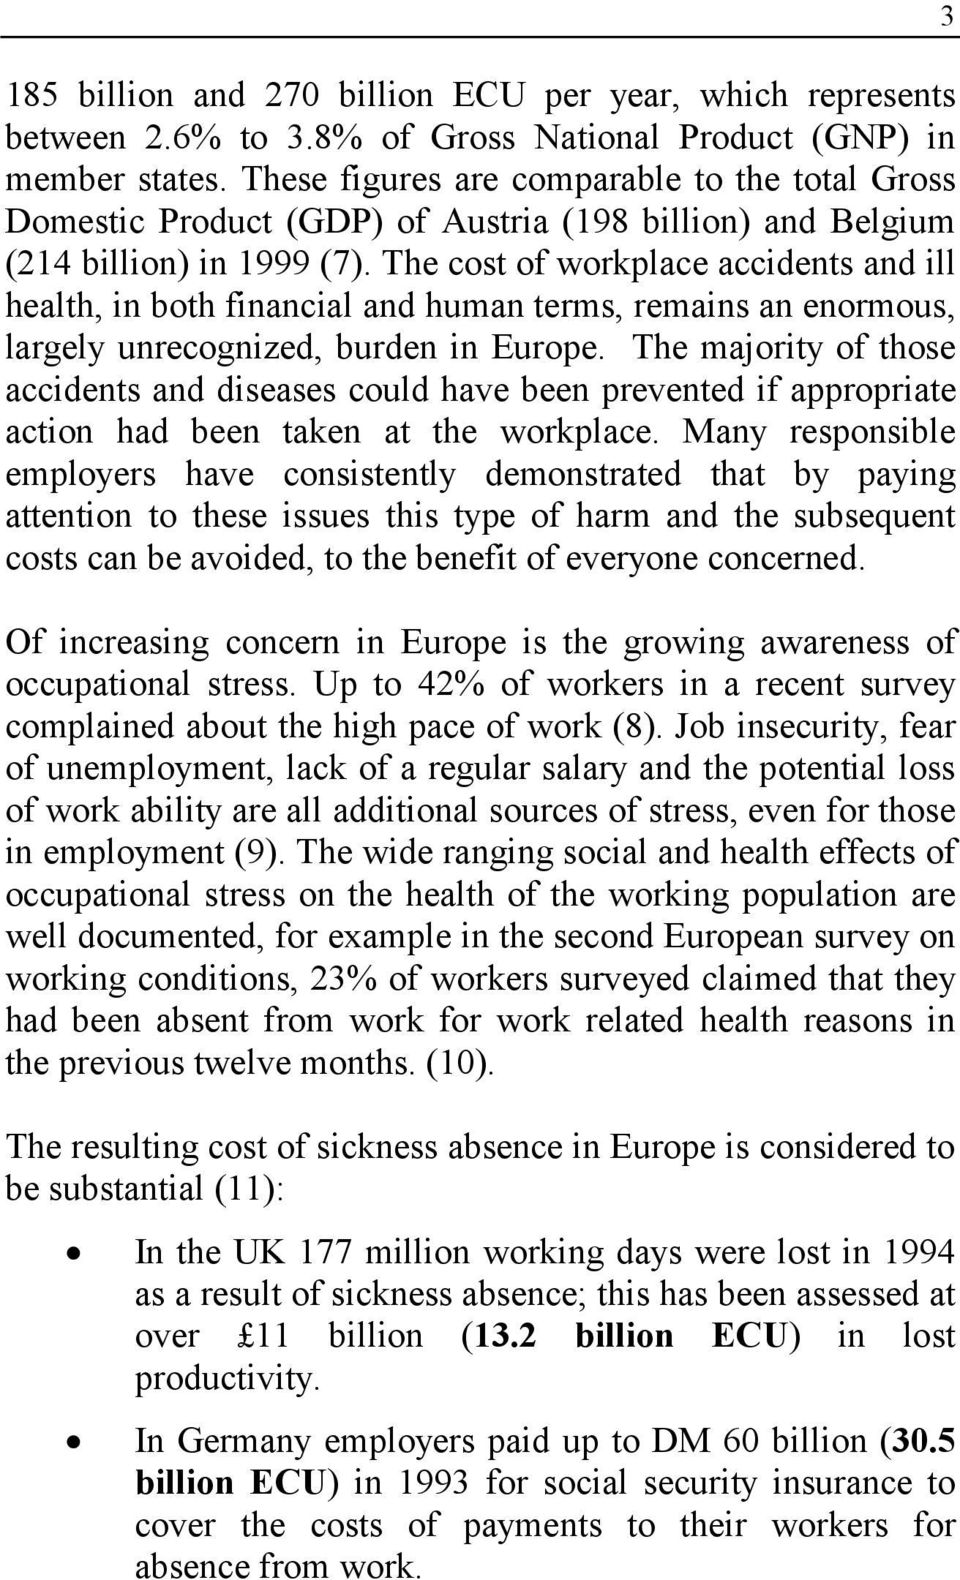 The cost of workplace accidents and ill health, in both financial and human terms, remains an enormous, largely unrecognized, burden in Europe.